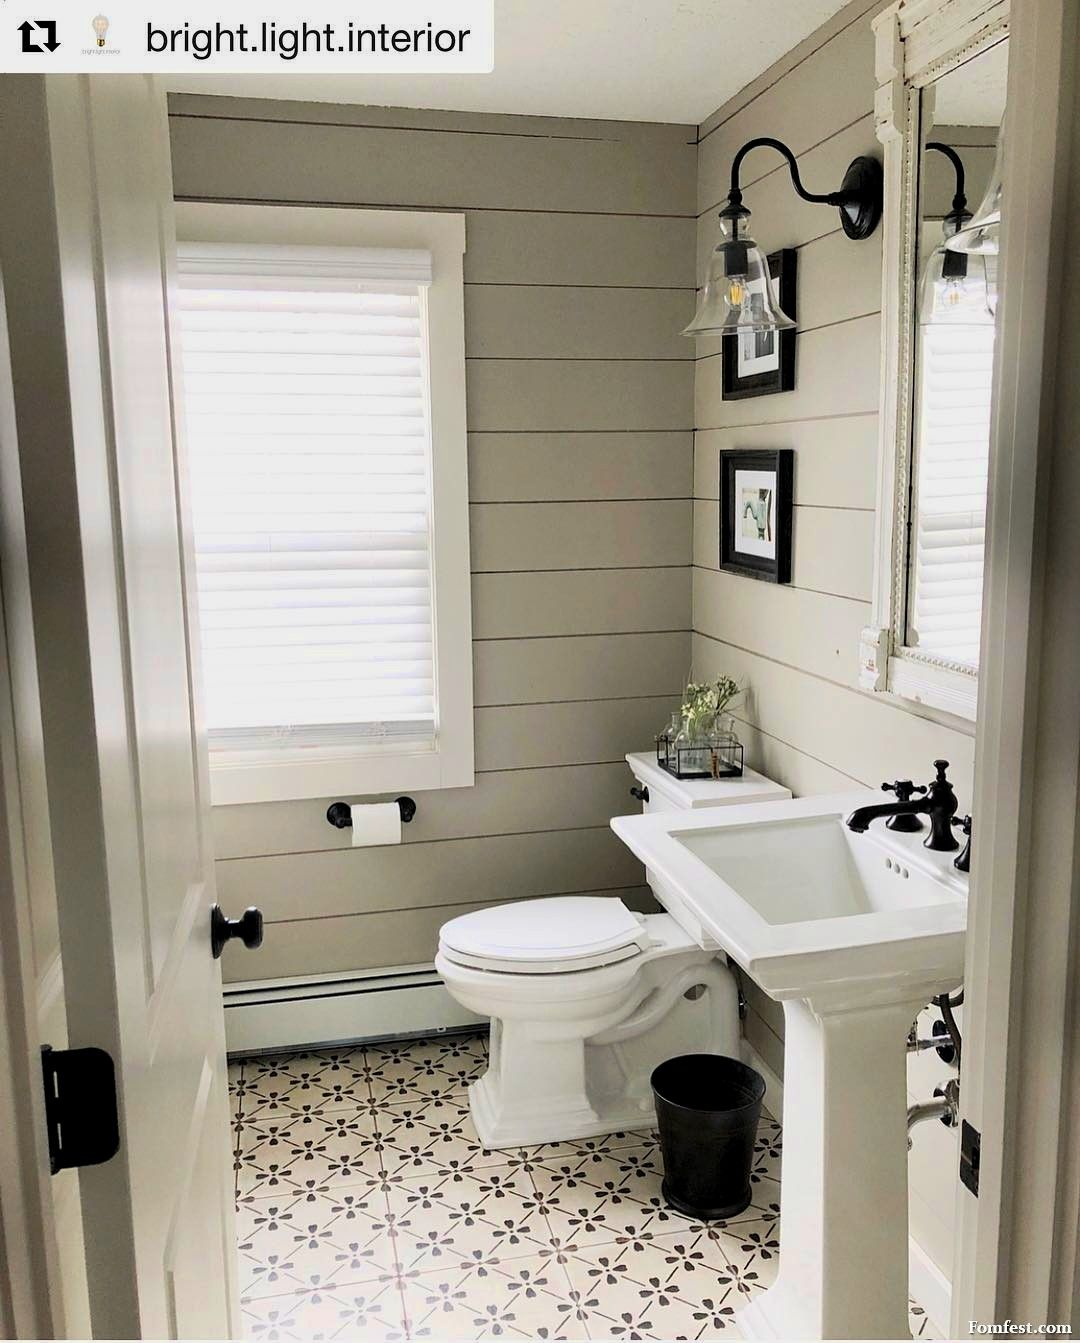 14+ tips for incorporating shiplap into your home | small bathroom remodel, bathrooms remodel